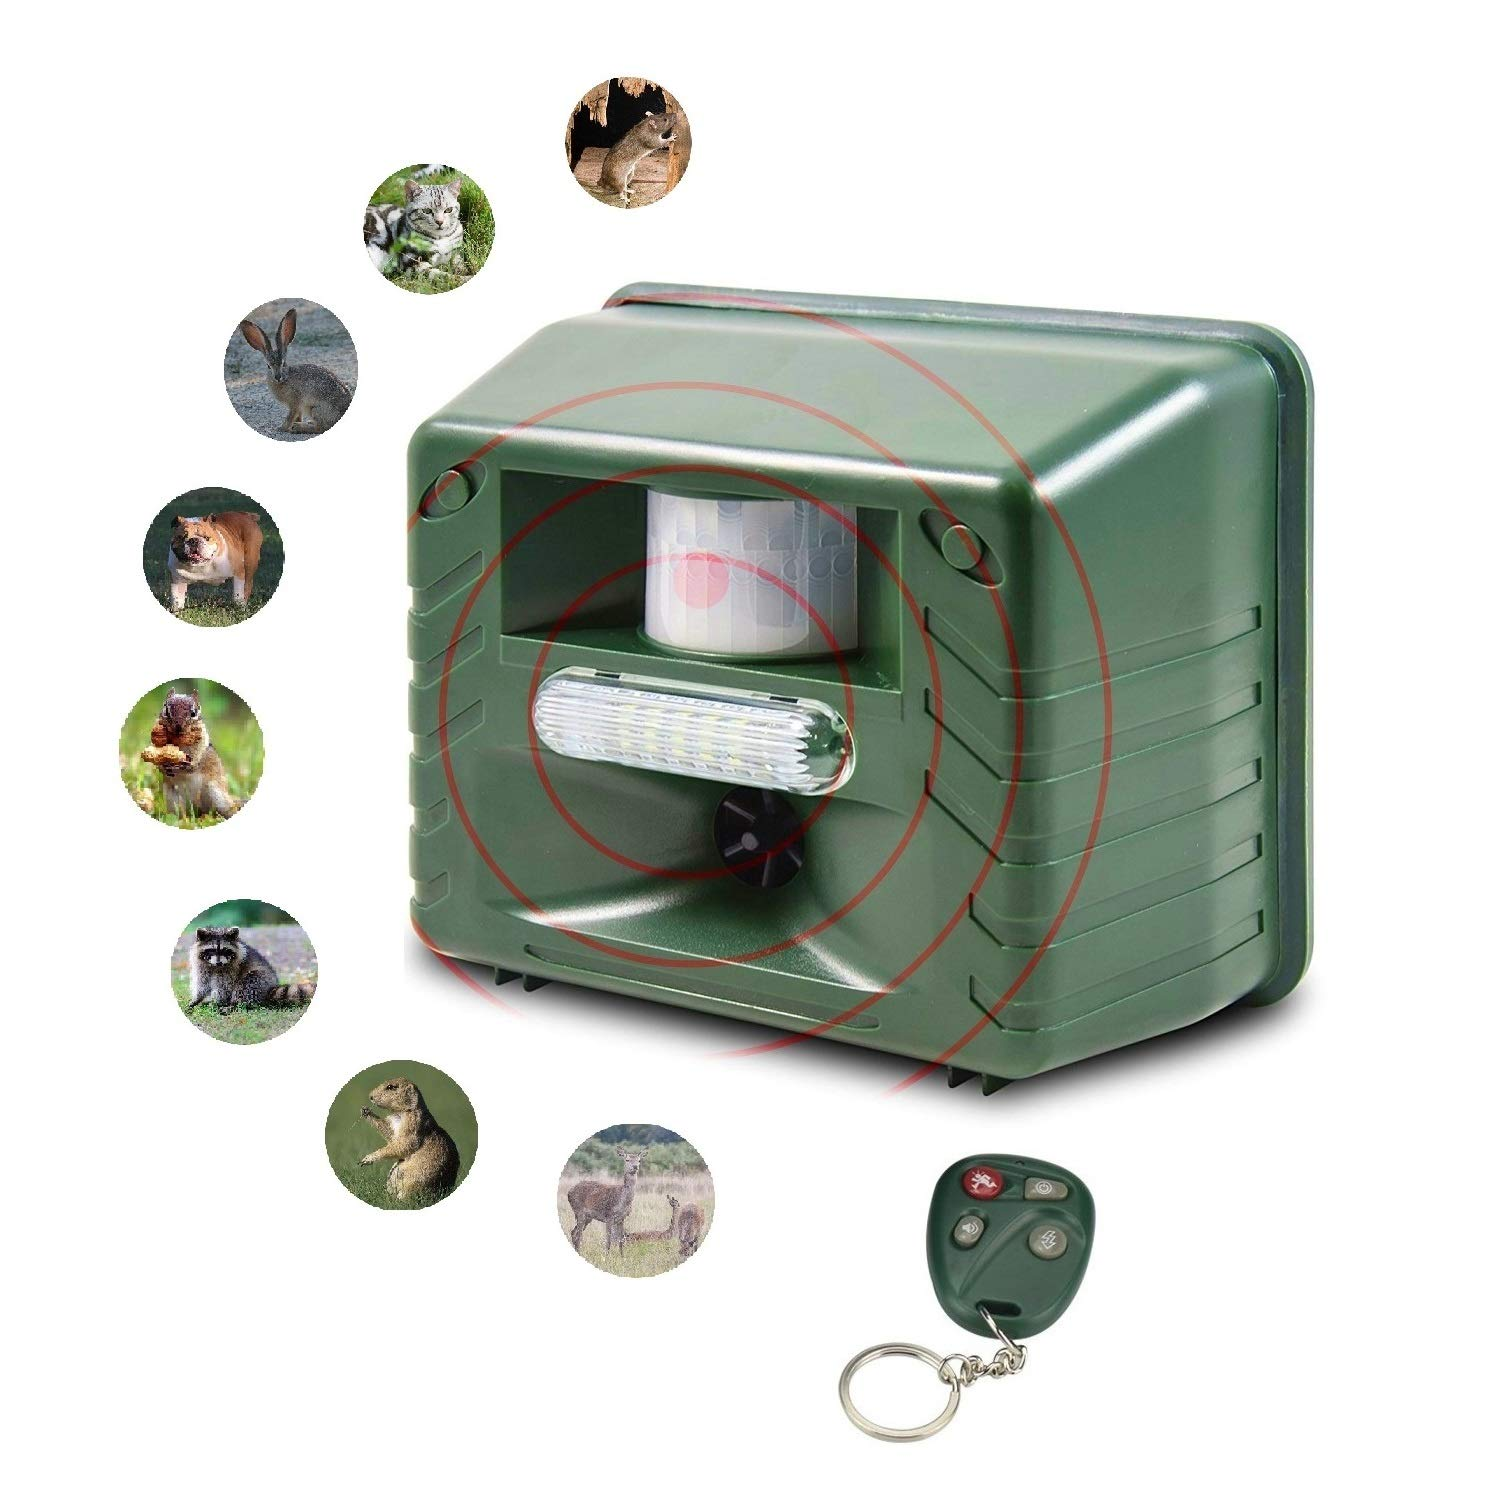 SENLUO Ultrasonic Animal Repeller | Flashing LED Lights,Eco-Friendly - Effective Pest | Animal Management Without Traps